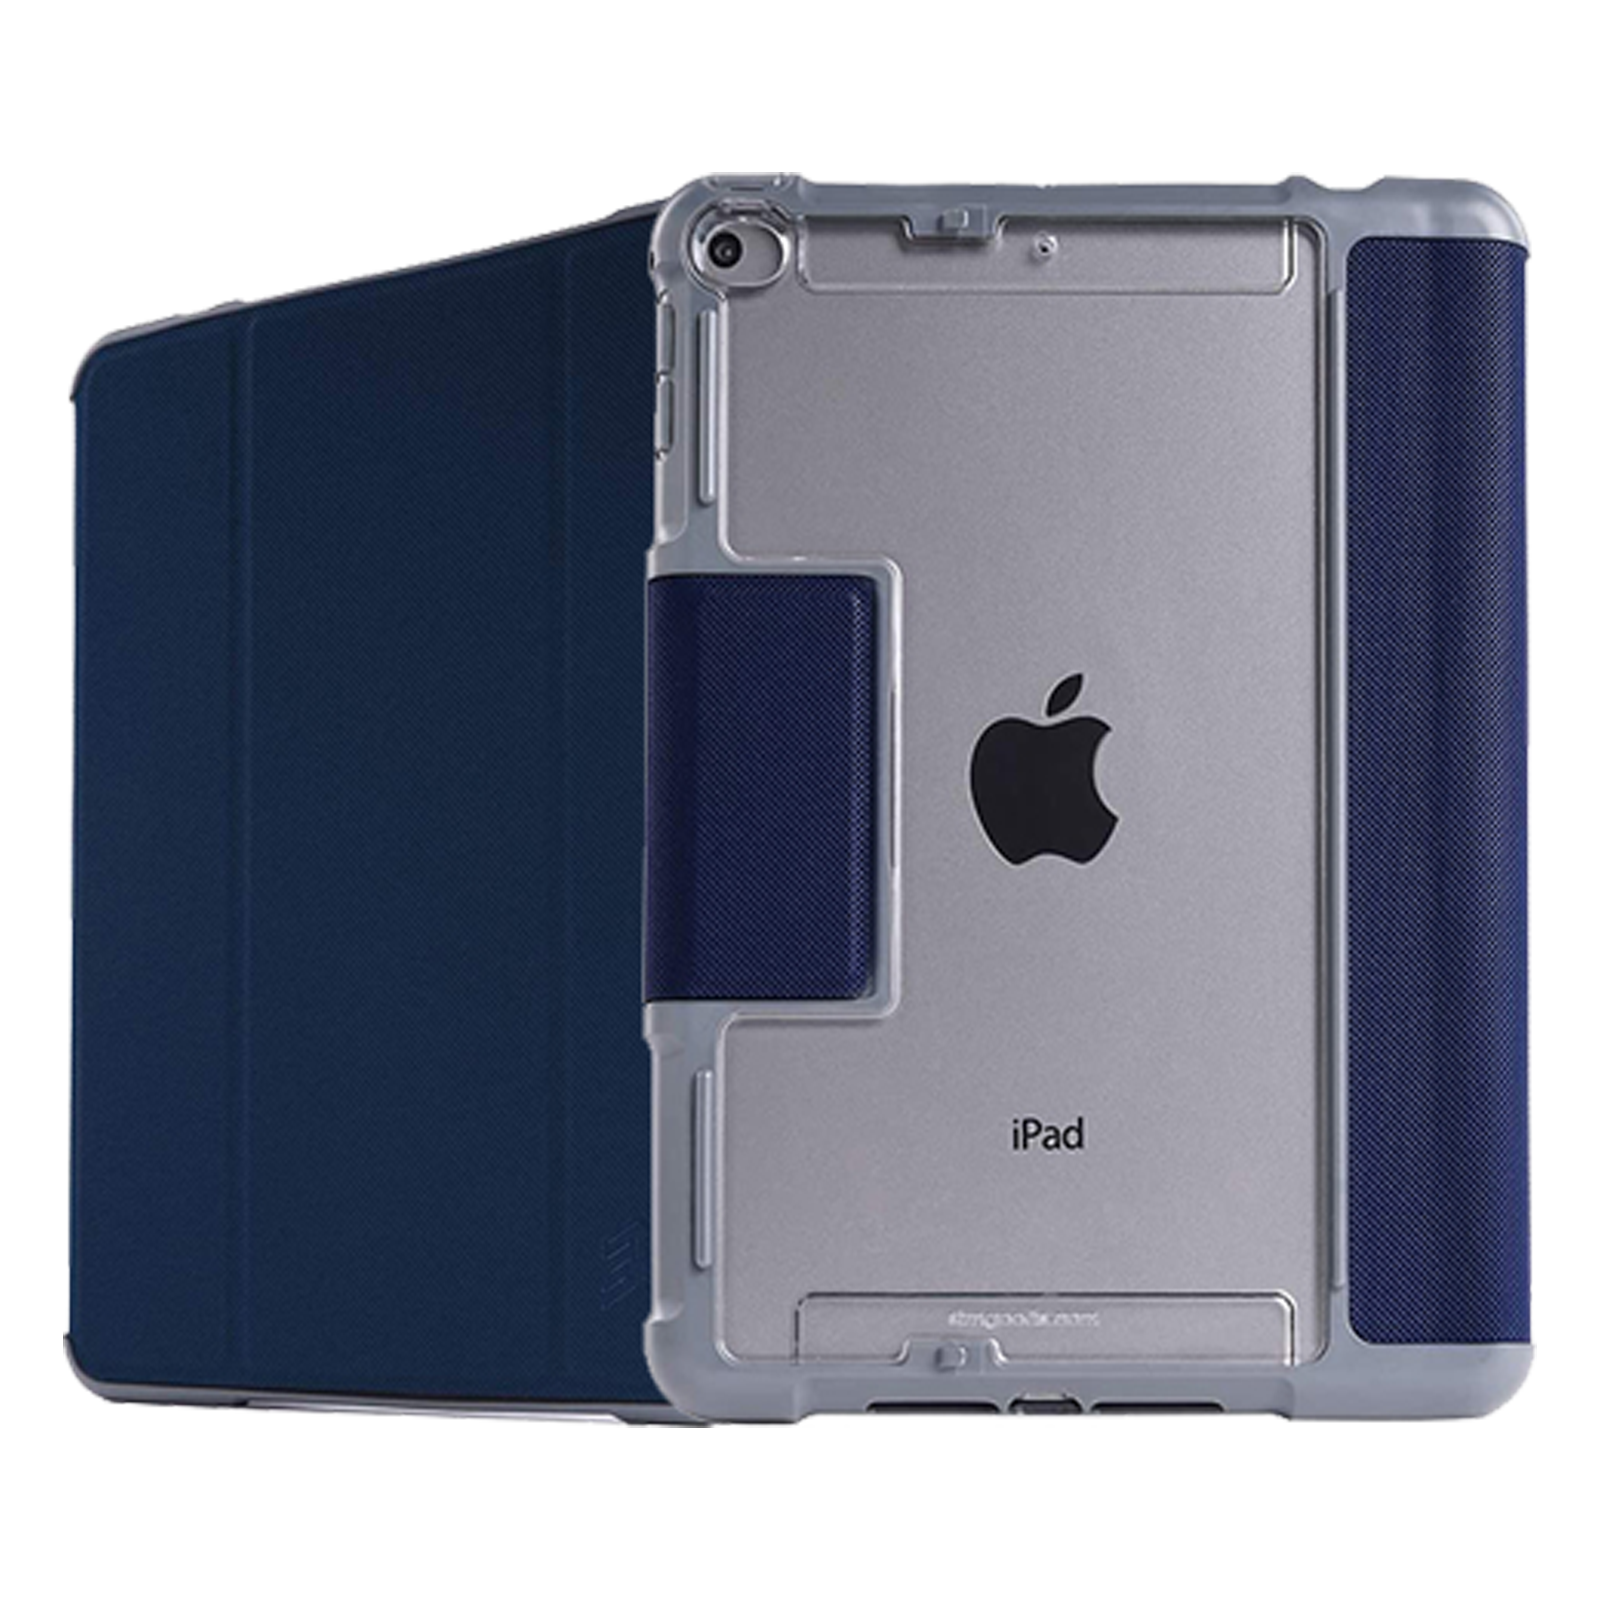 STM Dux Plus Duo Polyurethane Flip Case For iPad Mini 4/5th Gen (Instant On/Off Cover, STM-222-236GY-03, Midnight Blue)_1